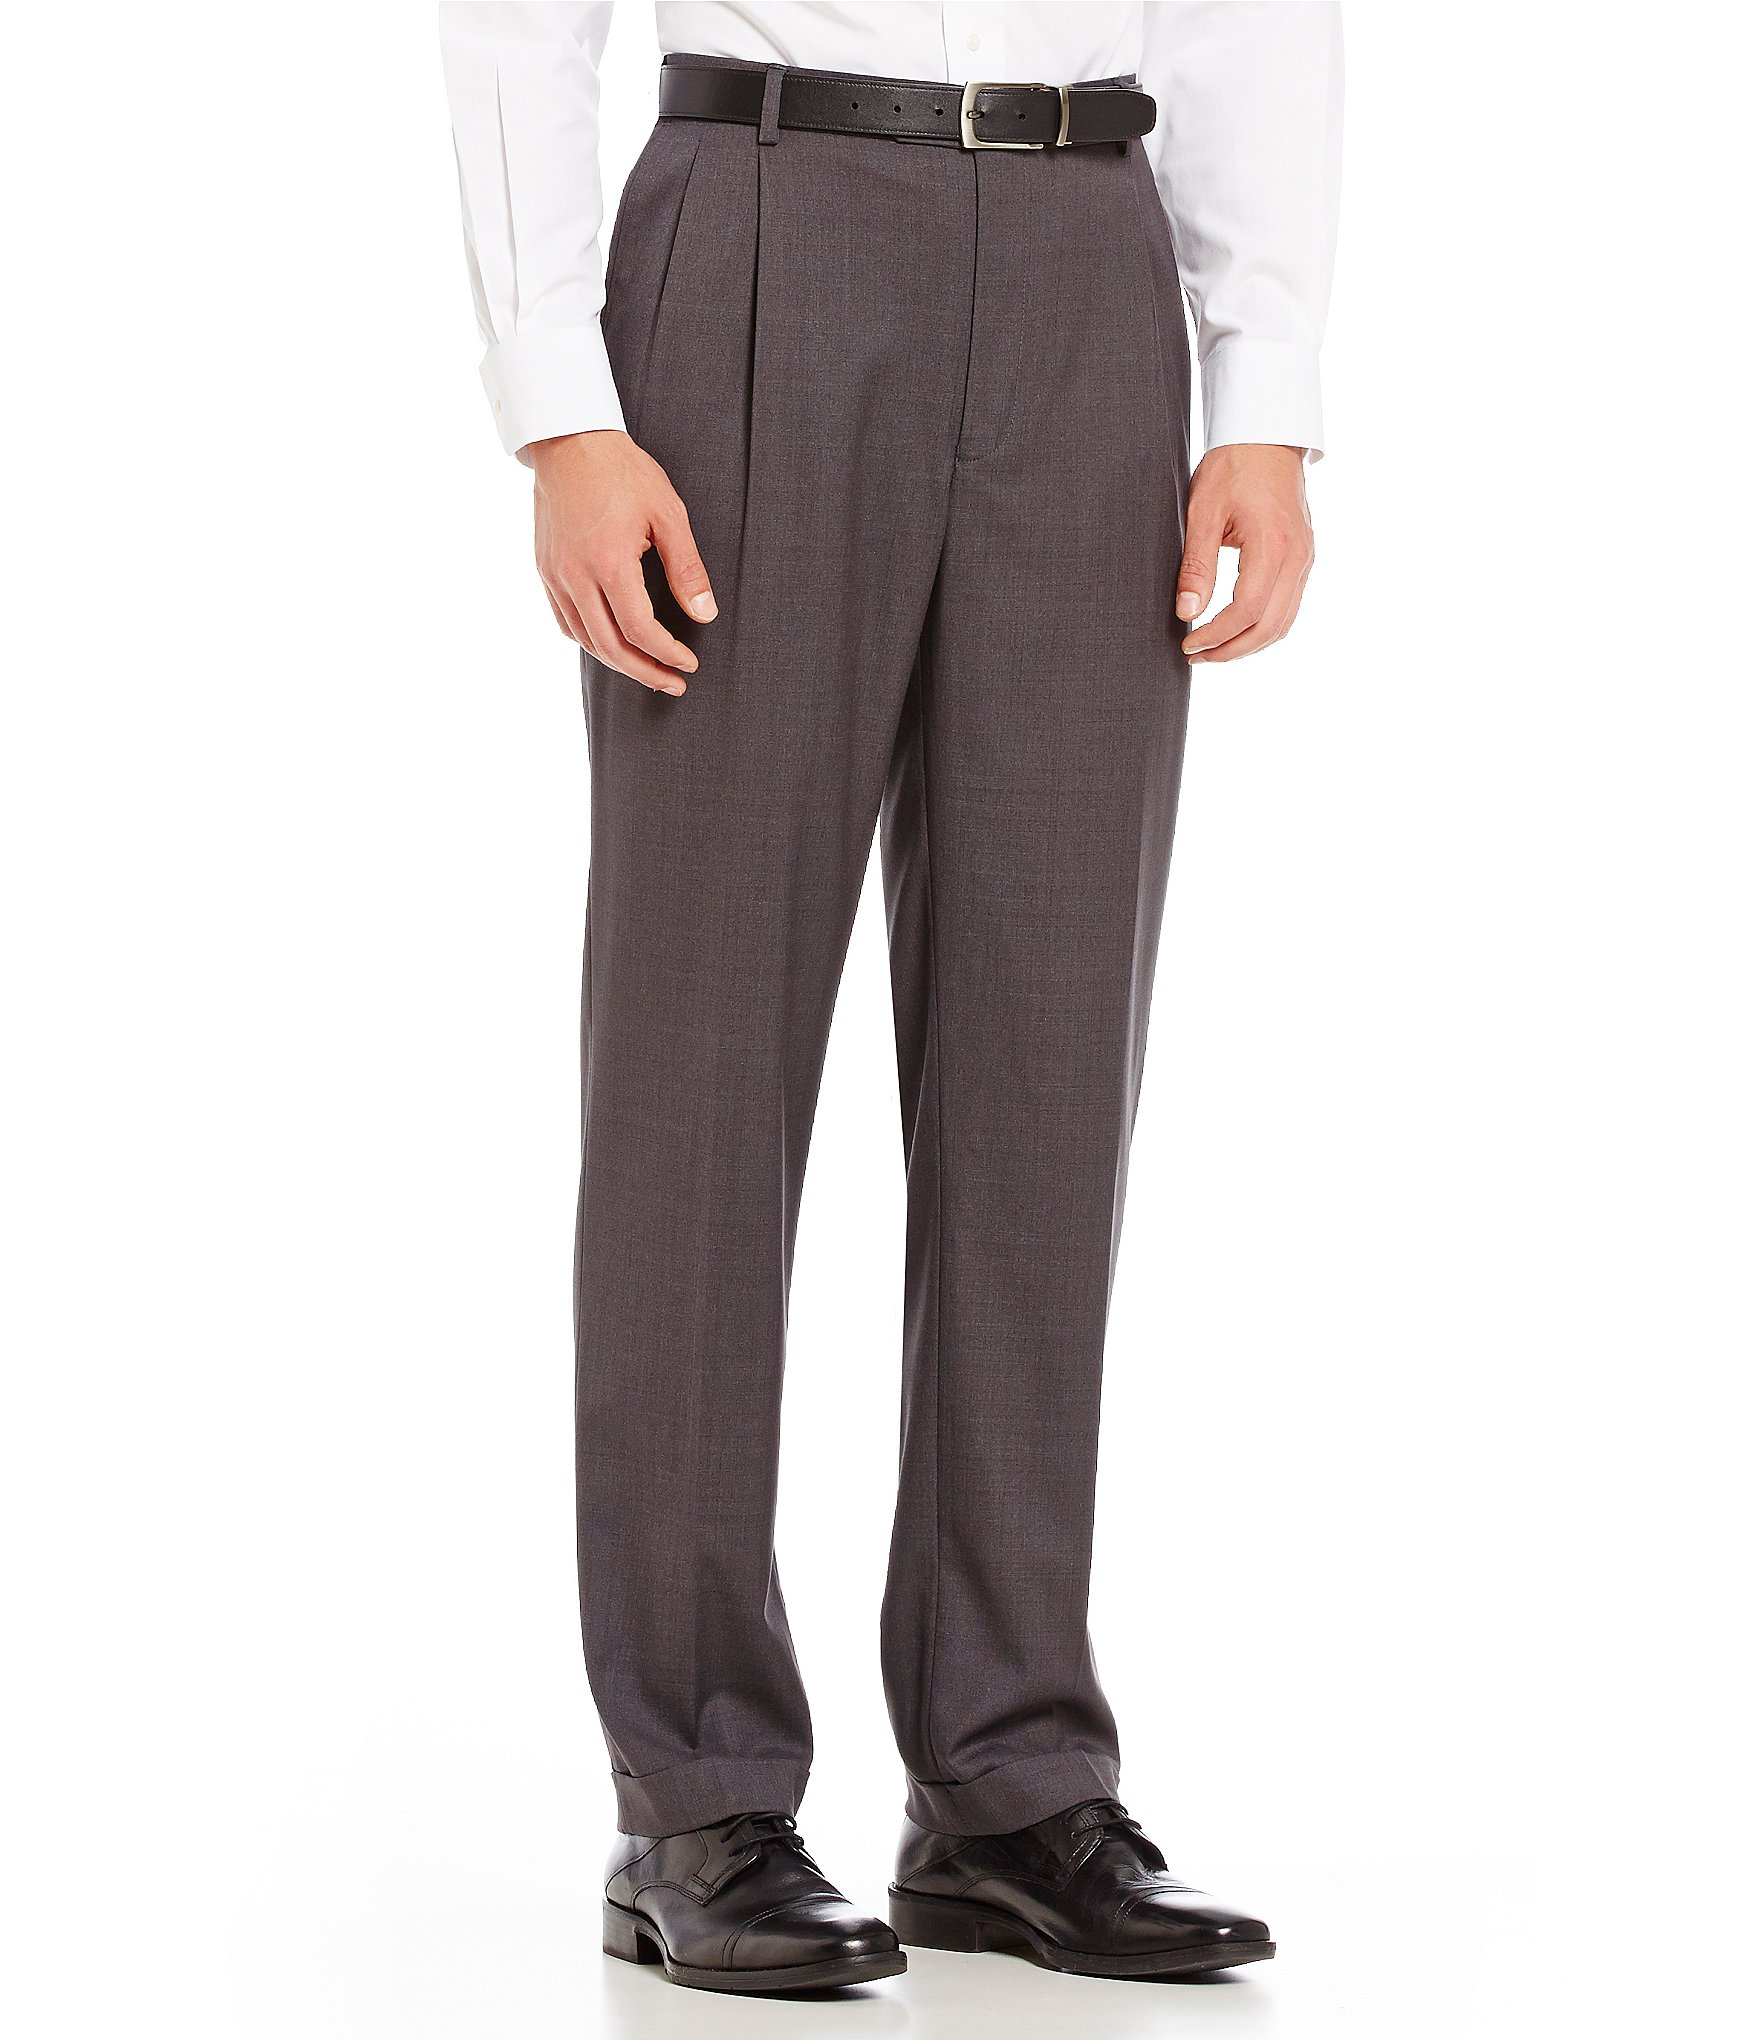 c782aaa8 Roundtree & Yorke Travel Smart Ultimate Comfort Classic Fit Pleat Front  Non-Iron Twill Dress Pants